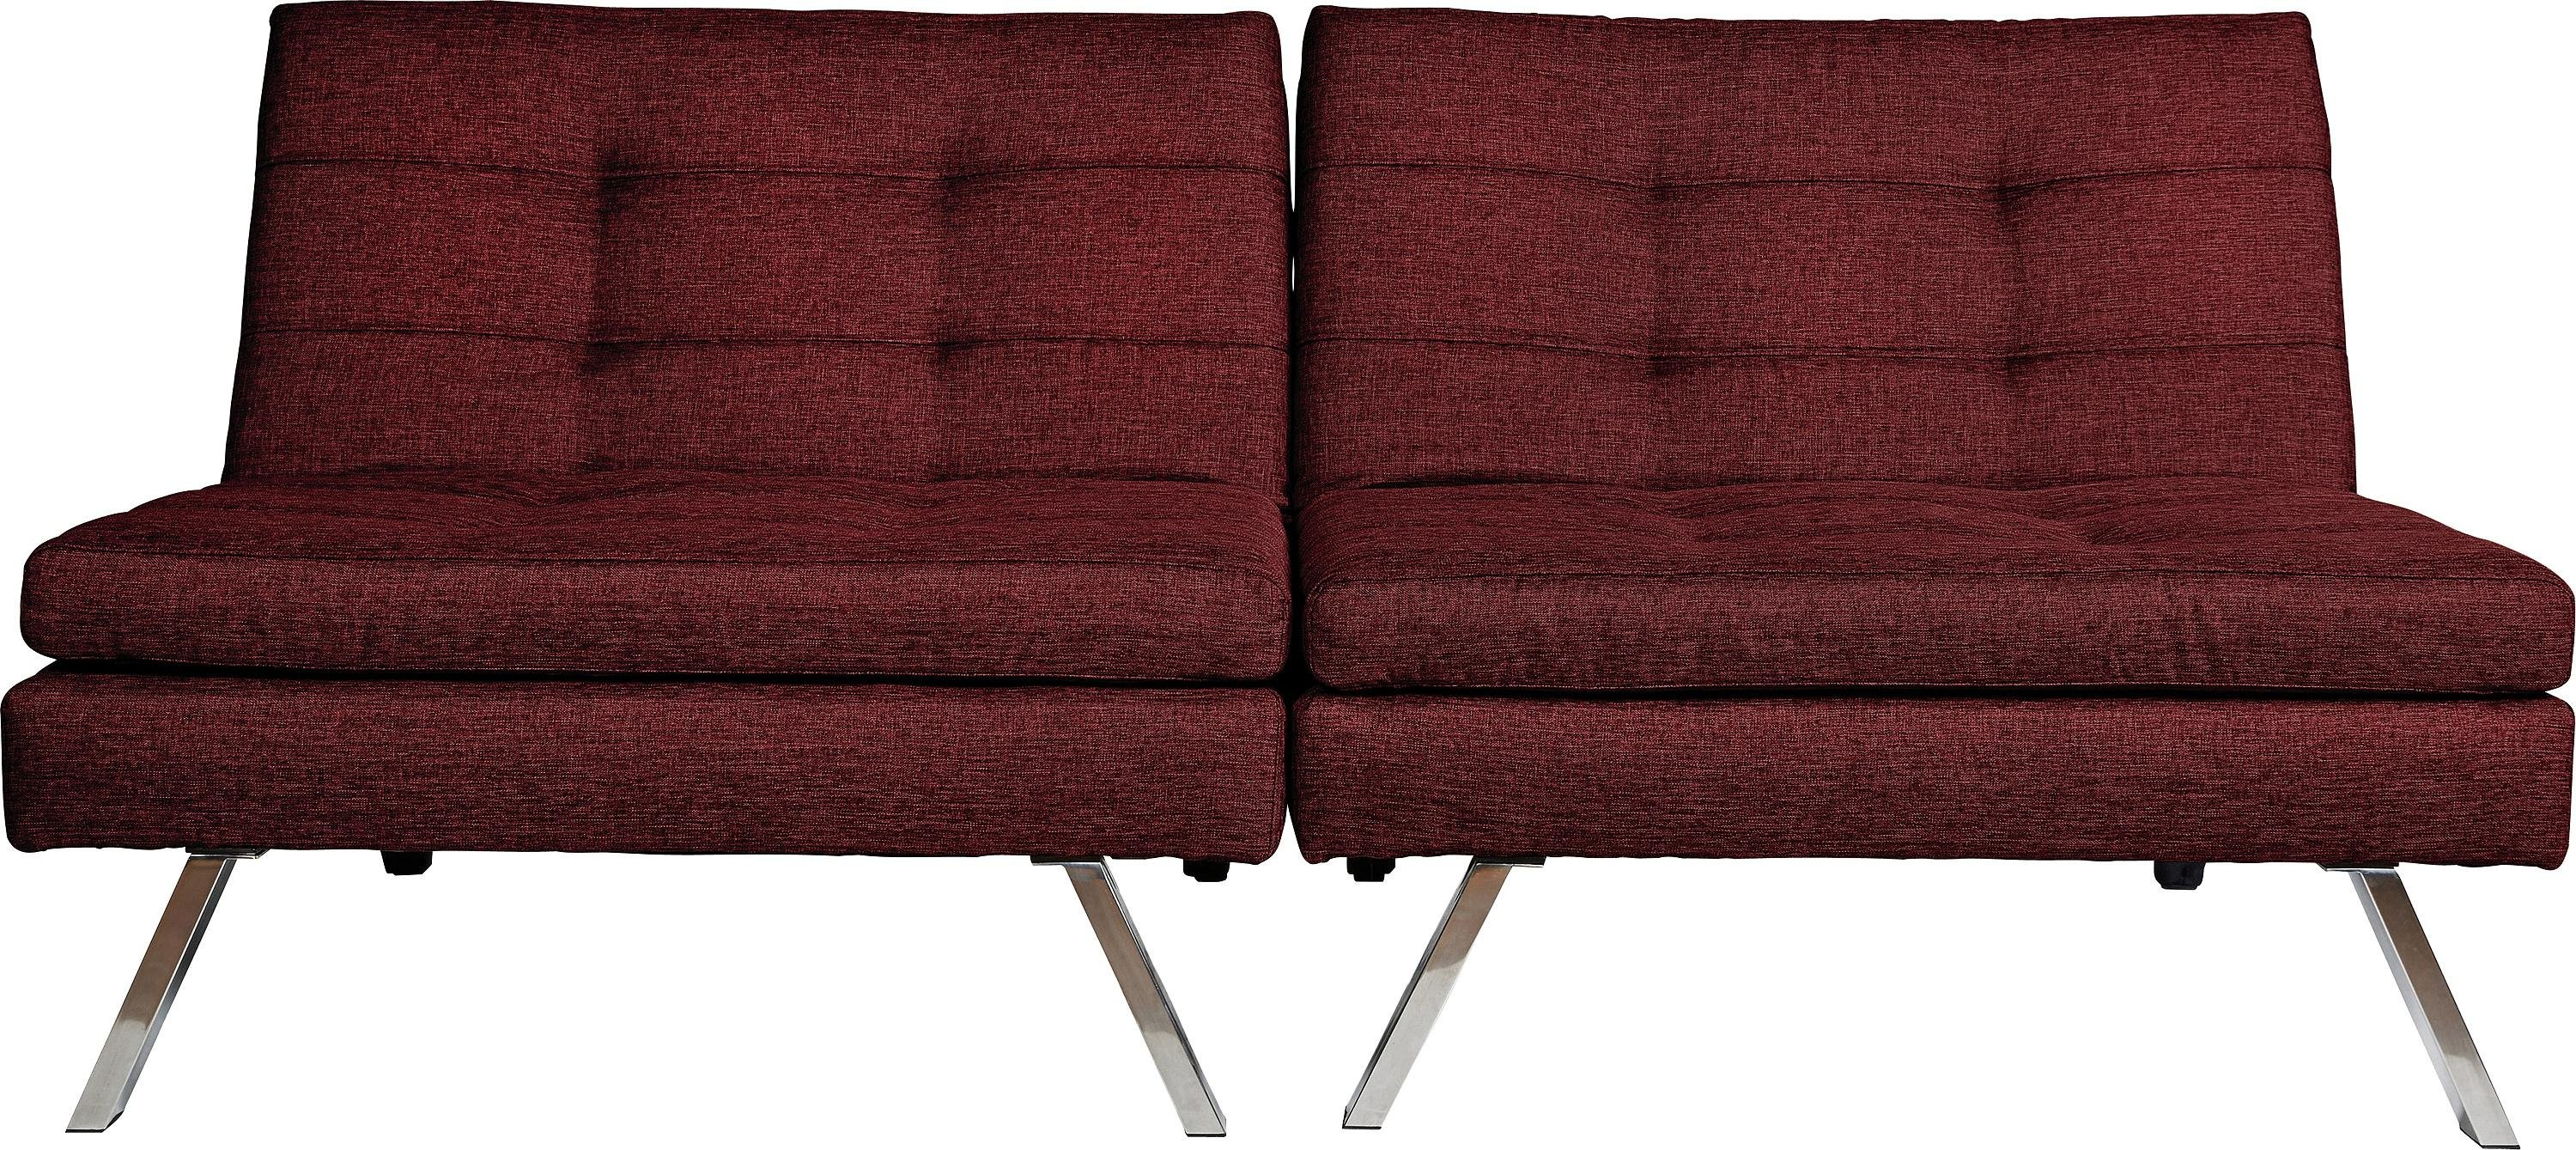 Double futon sofa bed double futon sofa bed ebay inside for Couch 4 meter